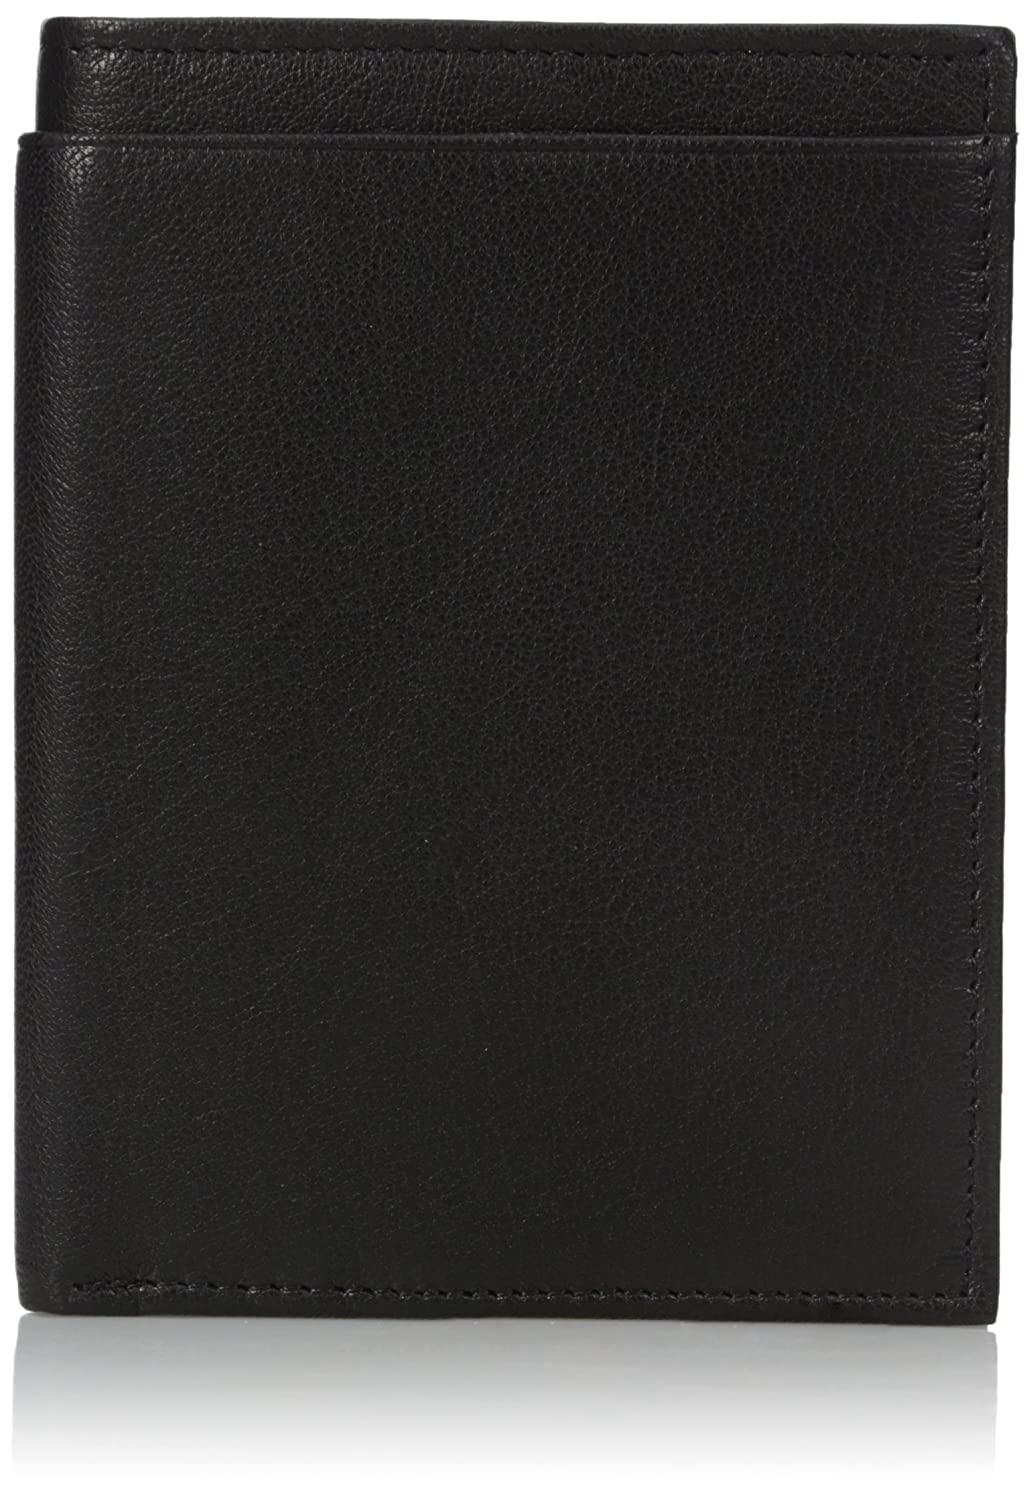 Buxton Men's RFID Blocking Passport Wallet Black One Size Buxton Men's Furnishings 79719N.BK